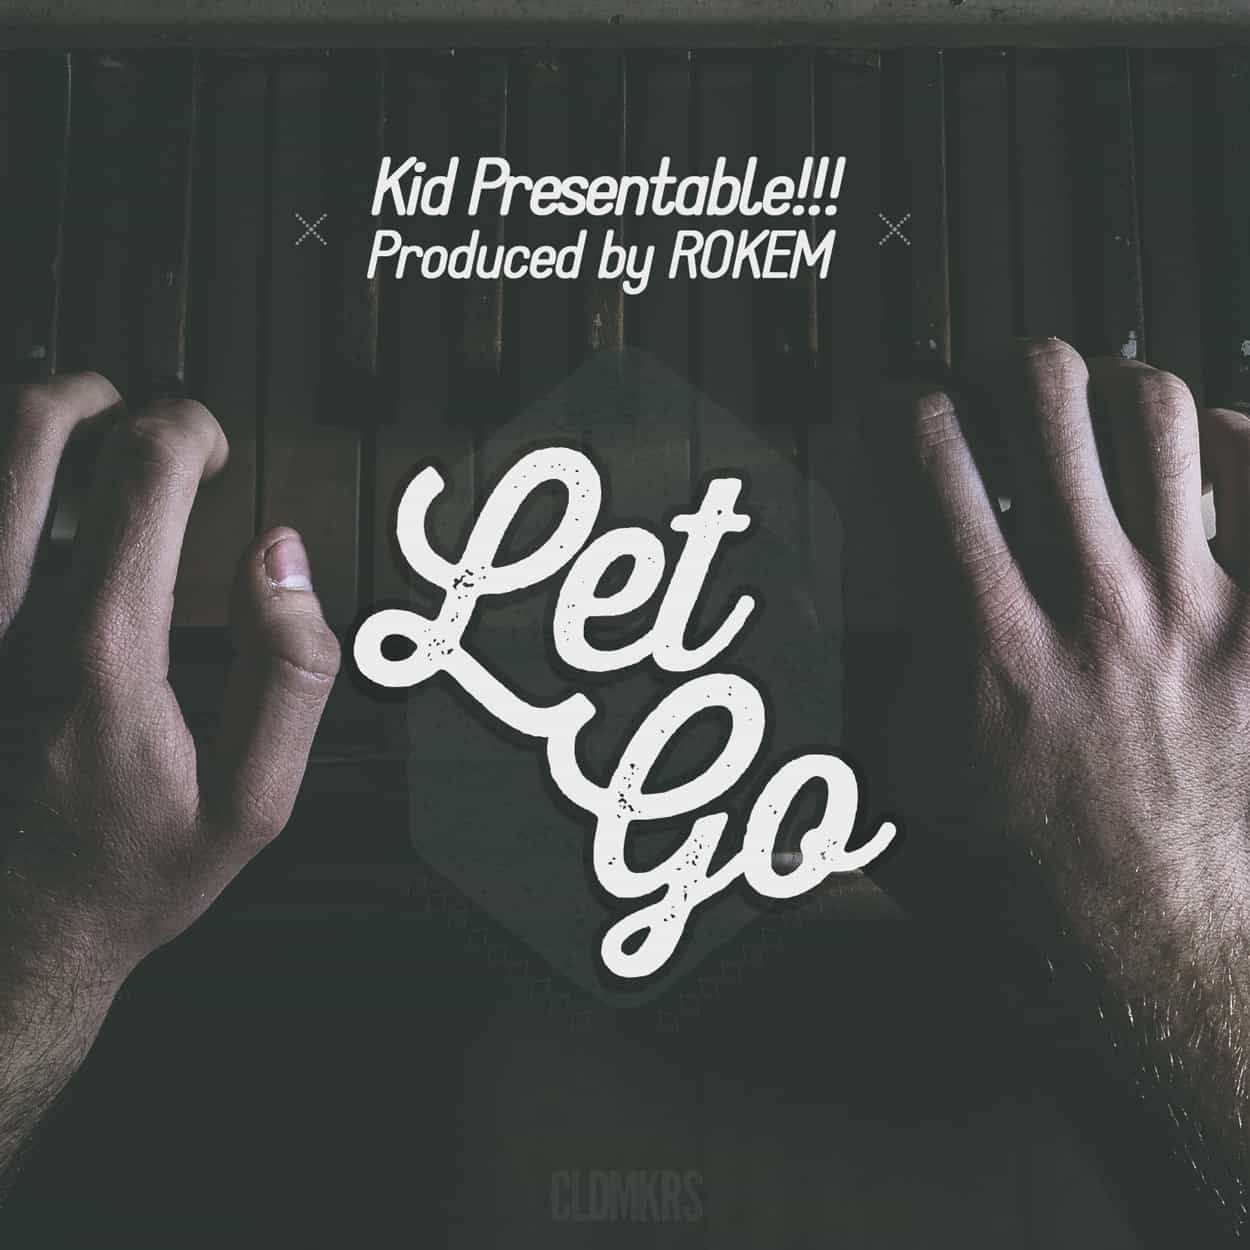 lets go - album art design